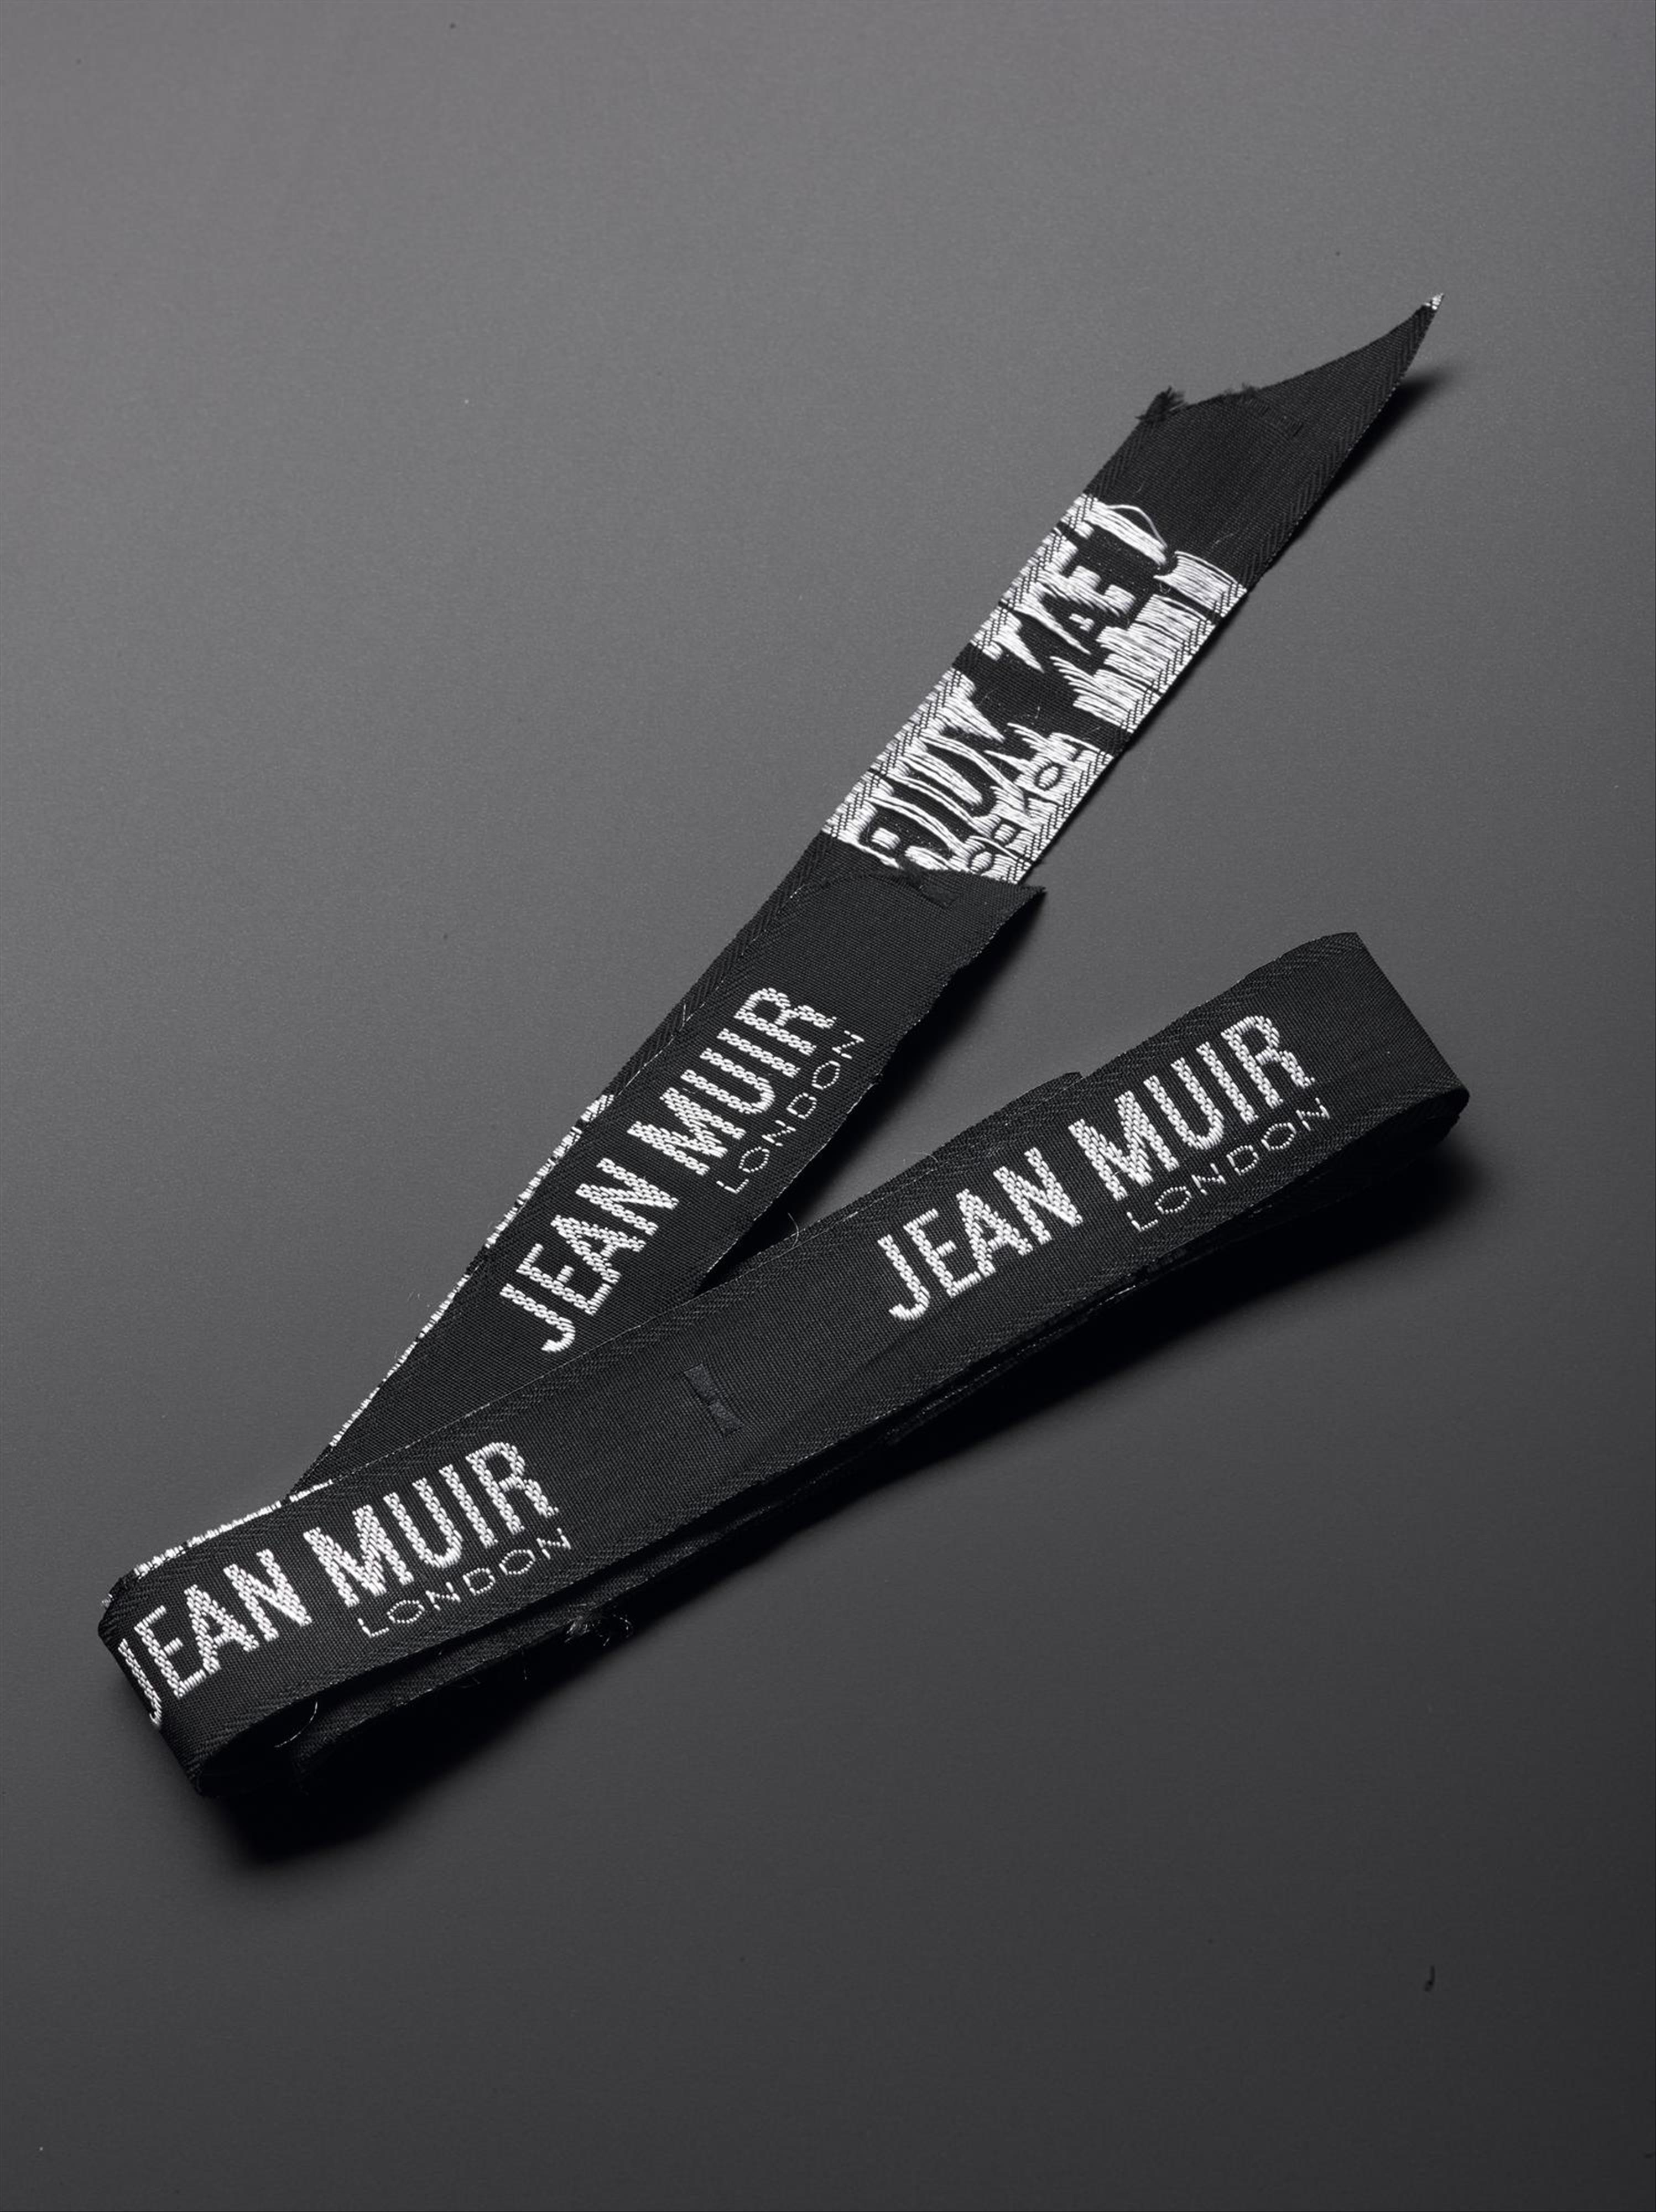 Strip of Jean Muir garment labels, possibly rayon, stitched with white cotton thread: British, by Jean Muir Ltd, 1966-95.